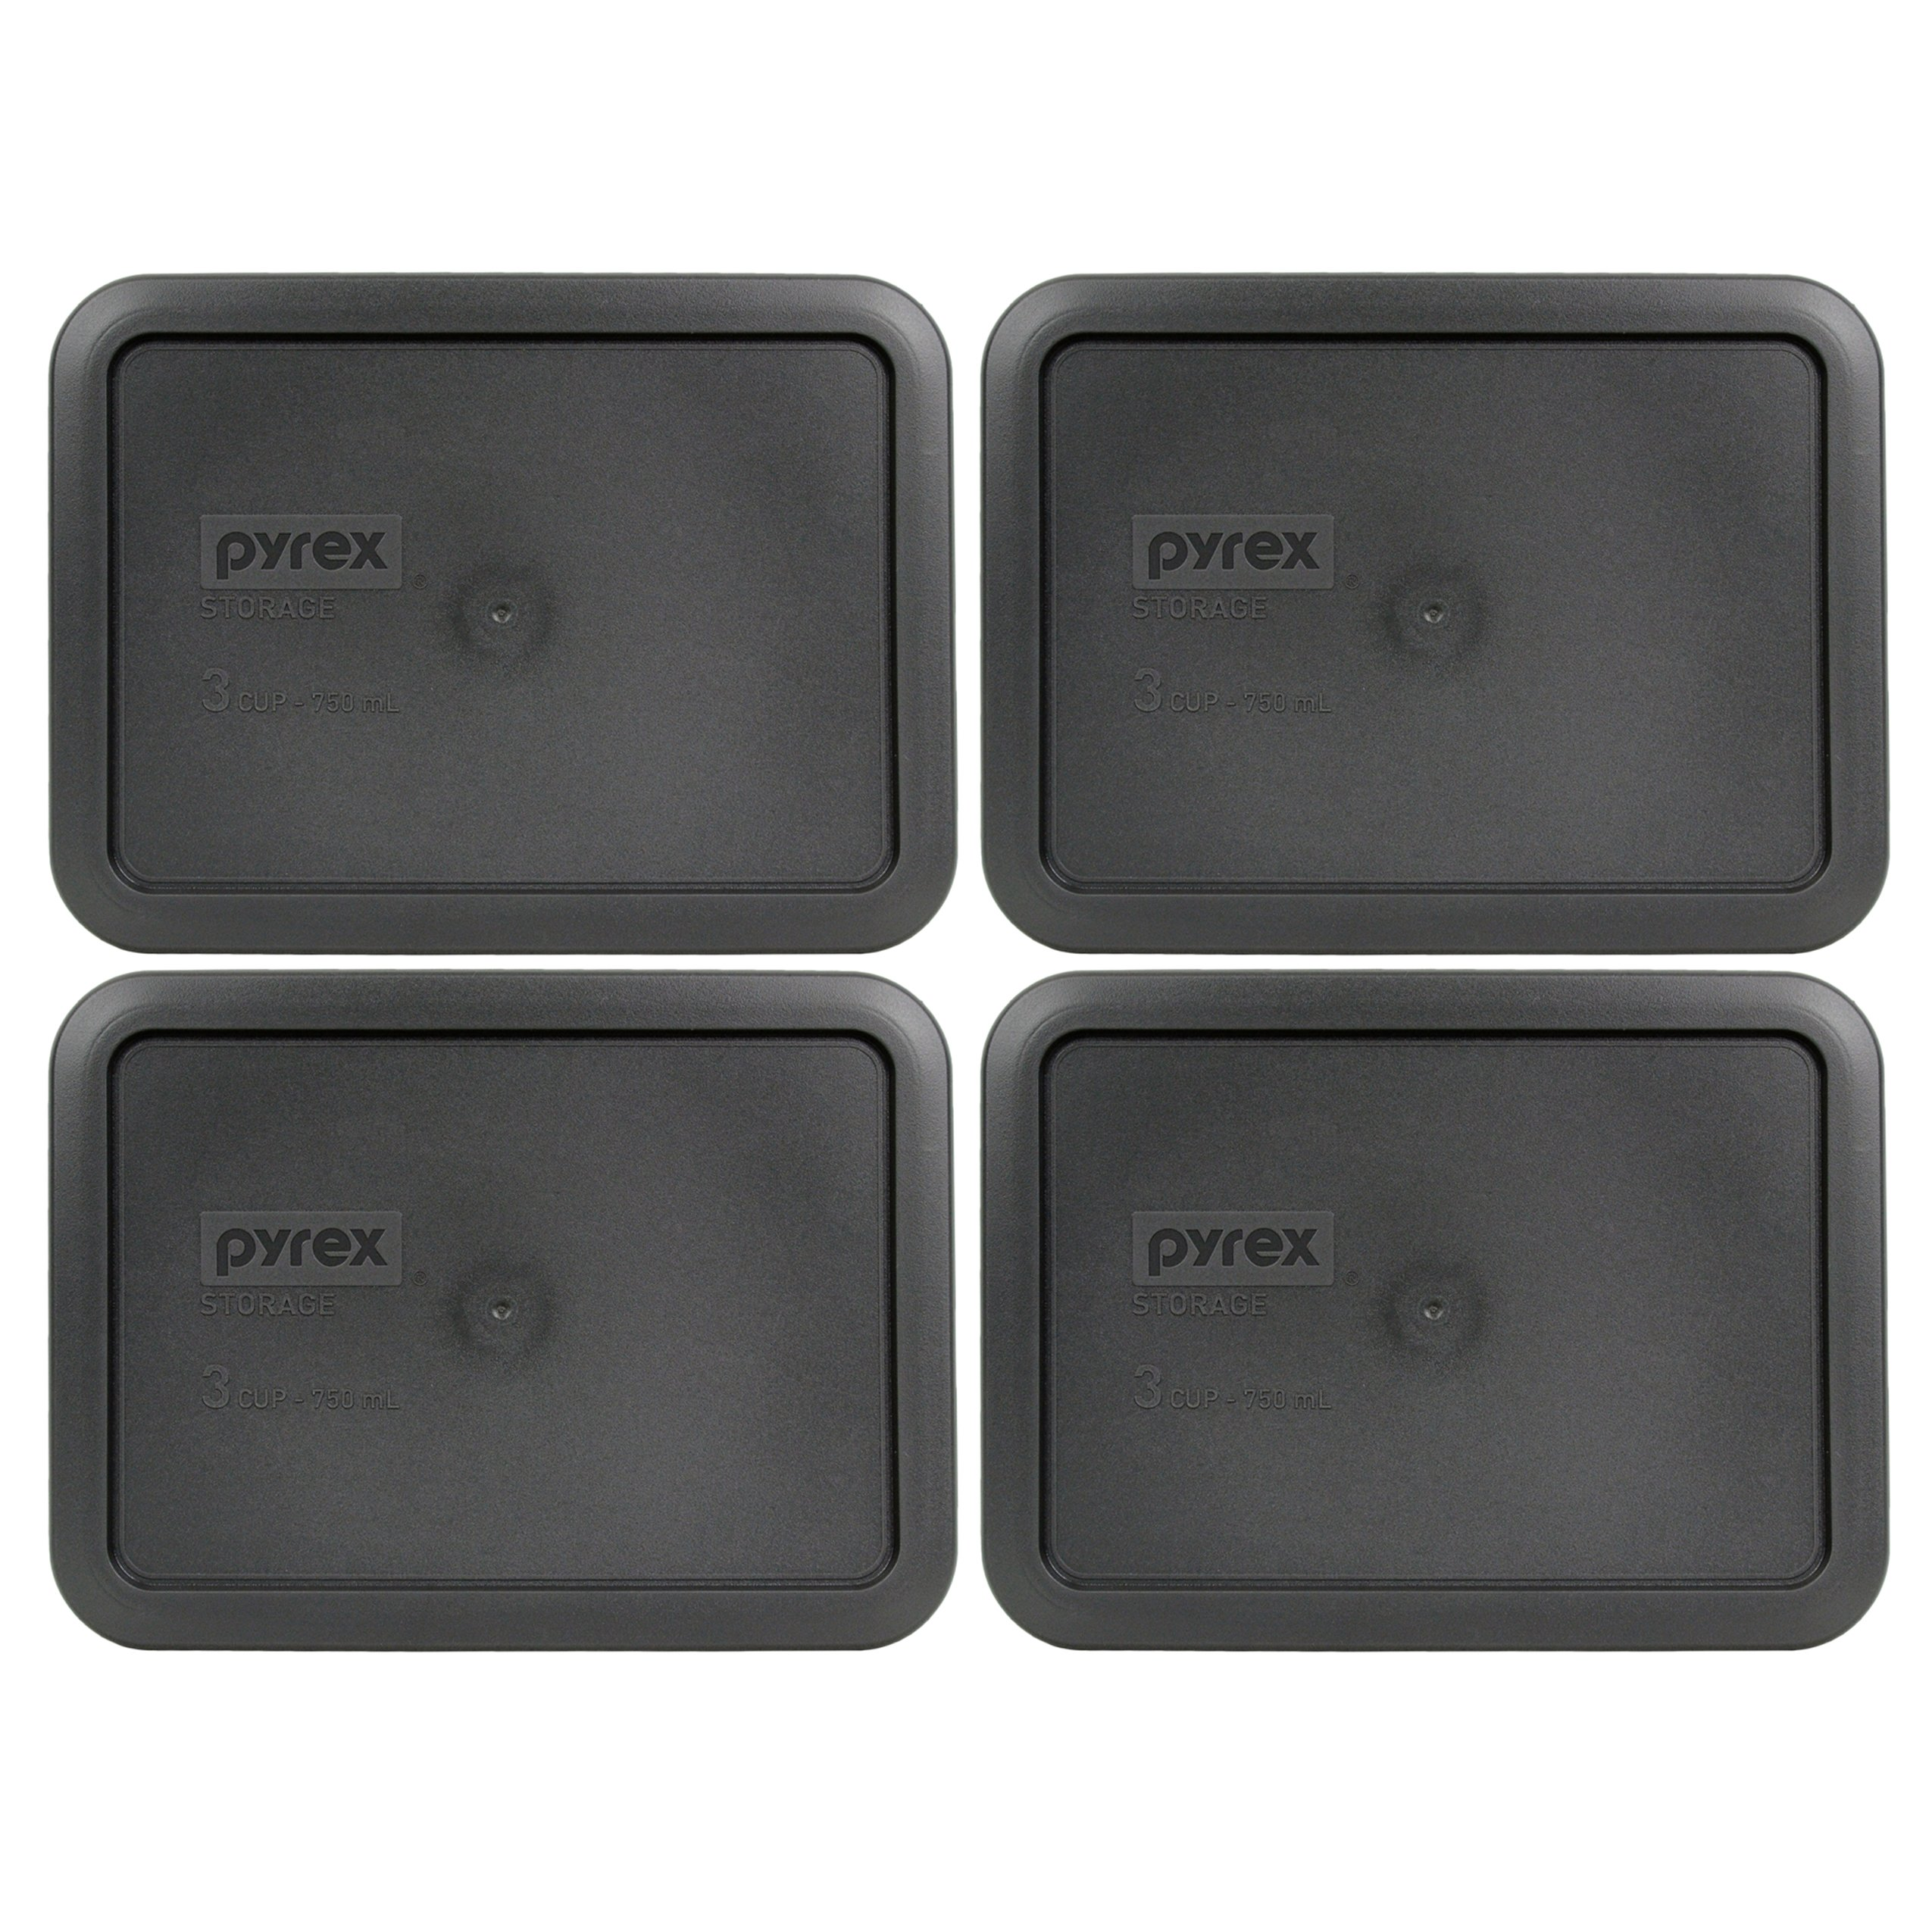 Pyrex 7210-PC Rectangle 3 Cup Charcoal Grey Storage Lid - 4 Pack by Pyrex